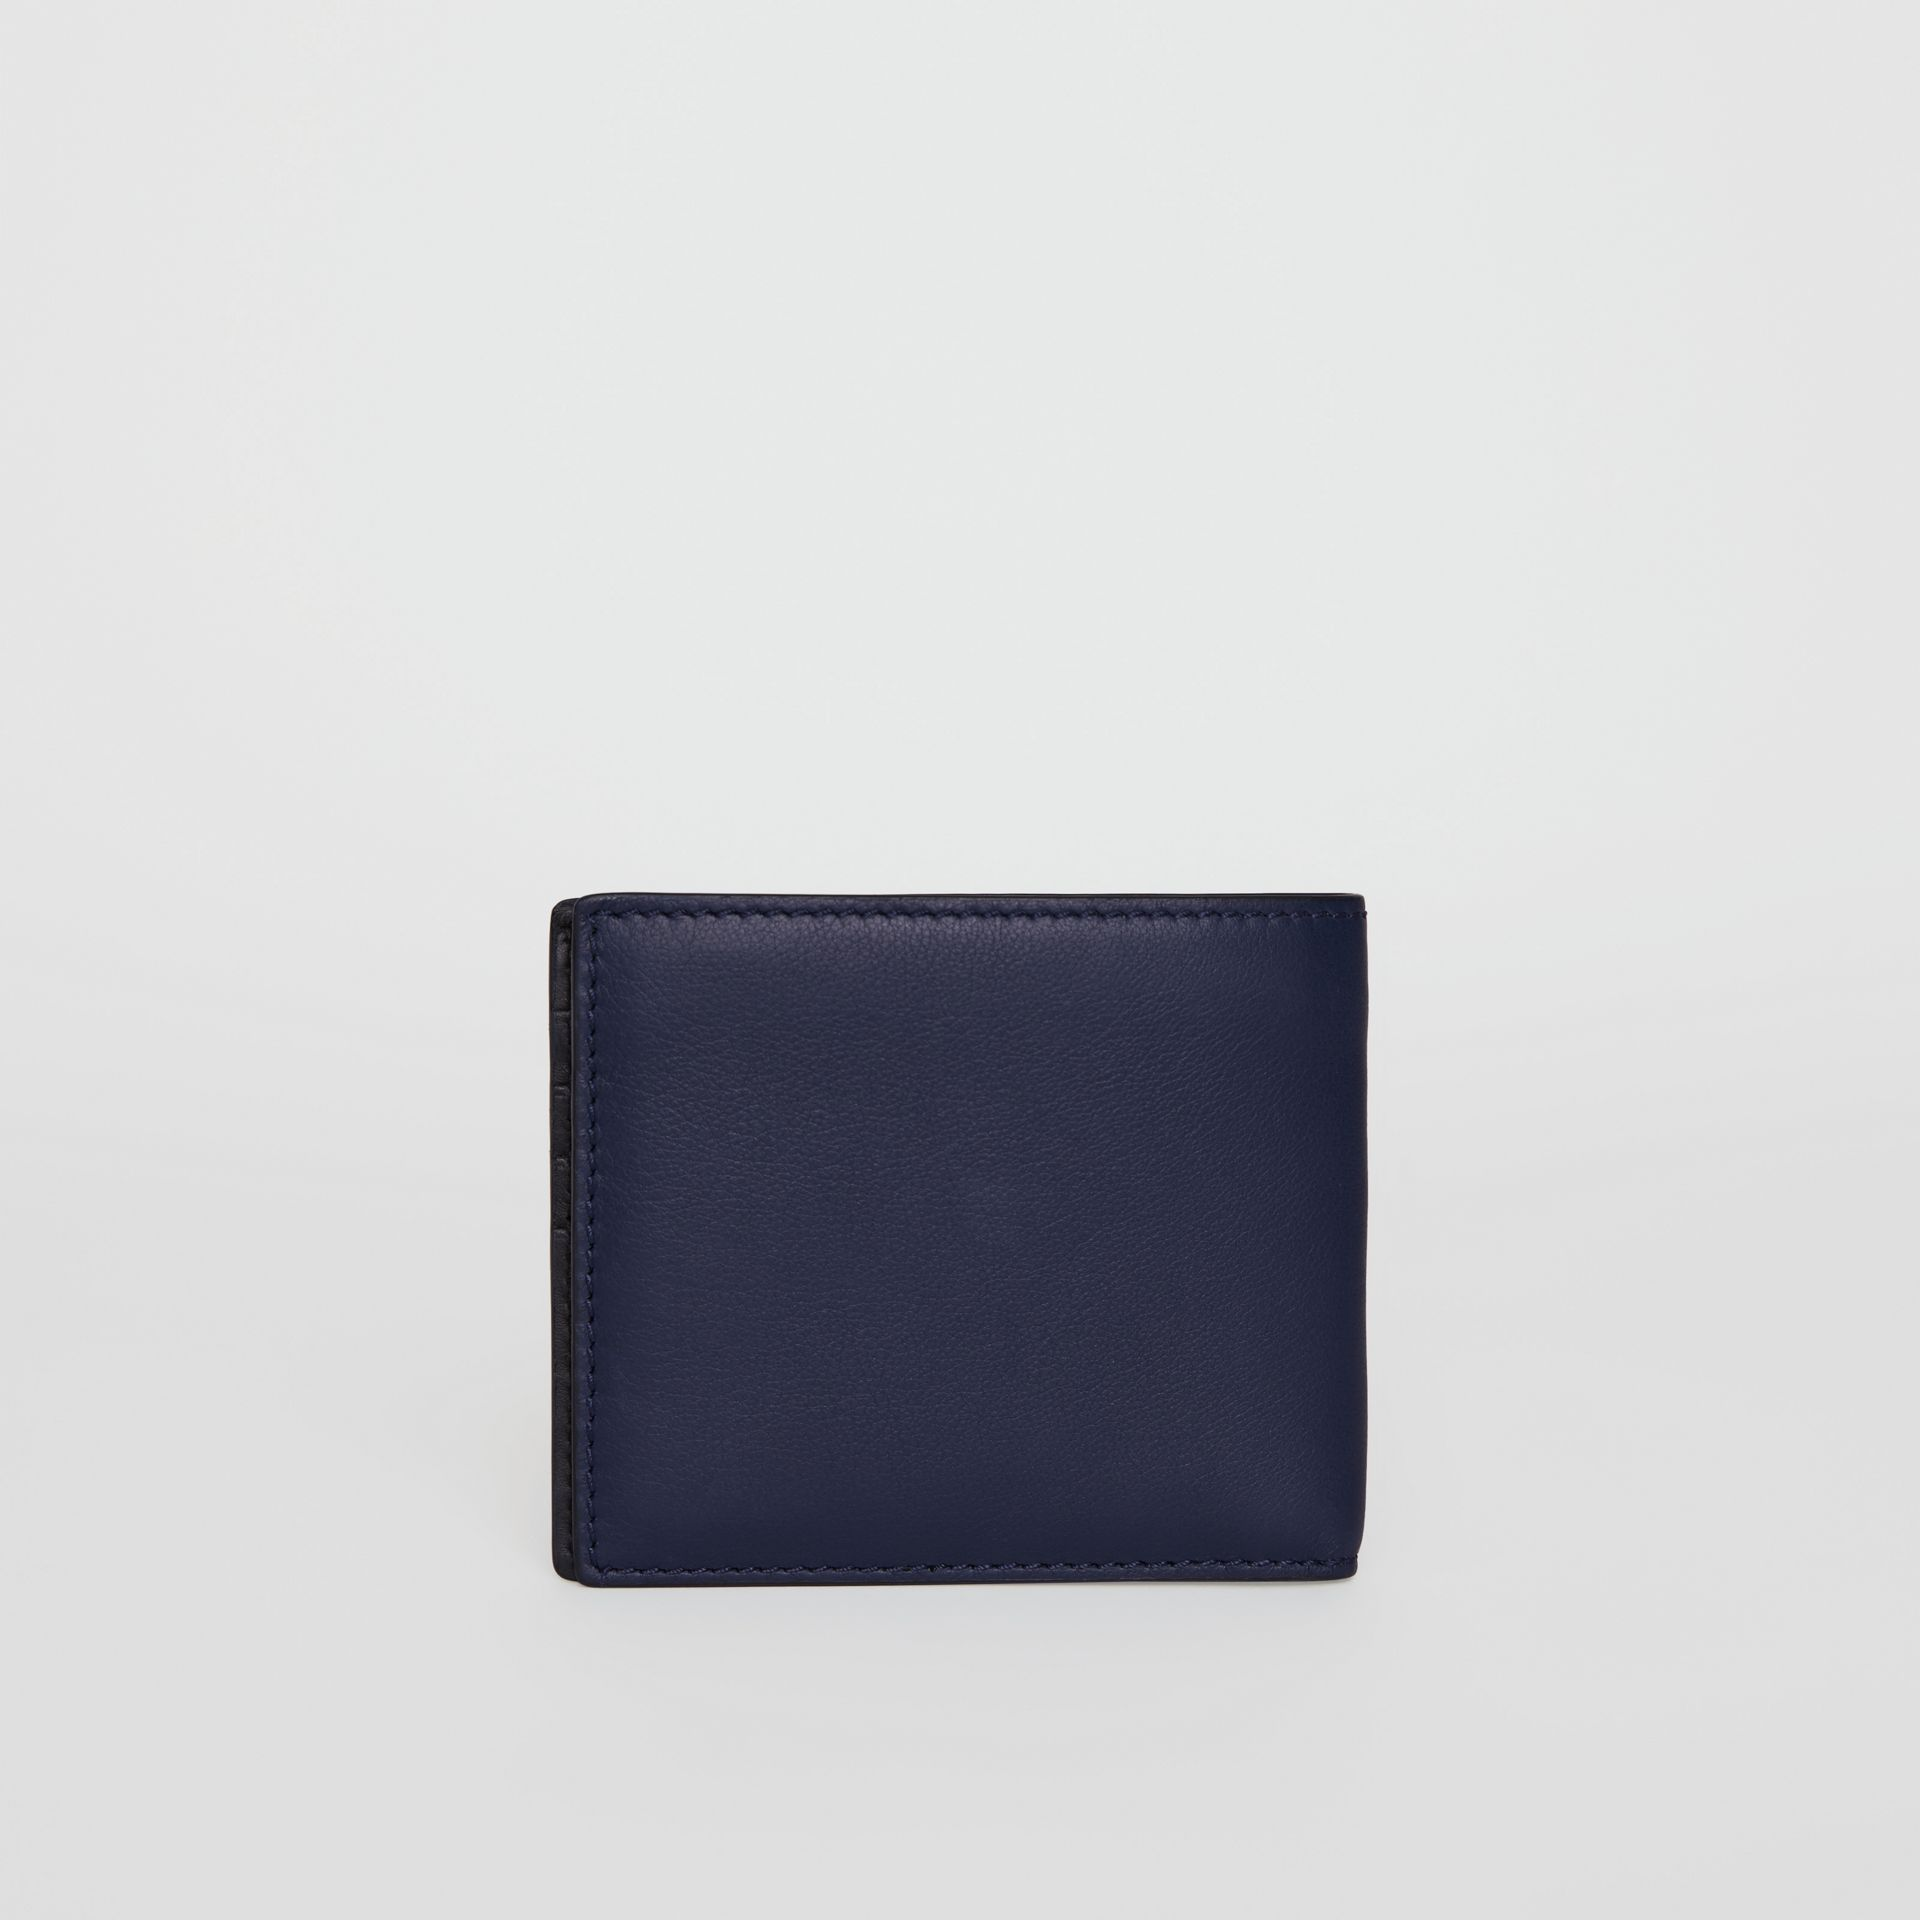 Embossed Crest Leather International Bifold Wallet in Regency Blue - Men | Burberry - gallery image 4